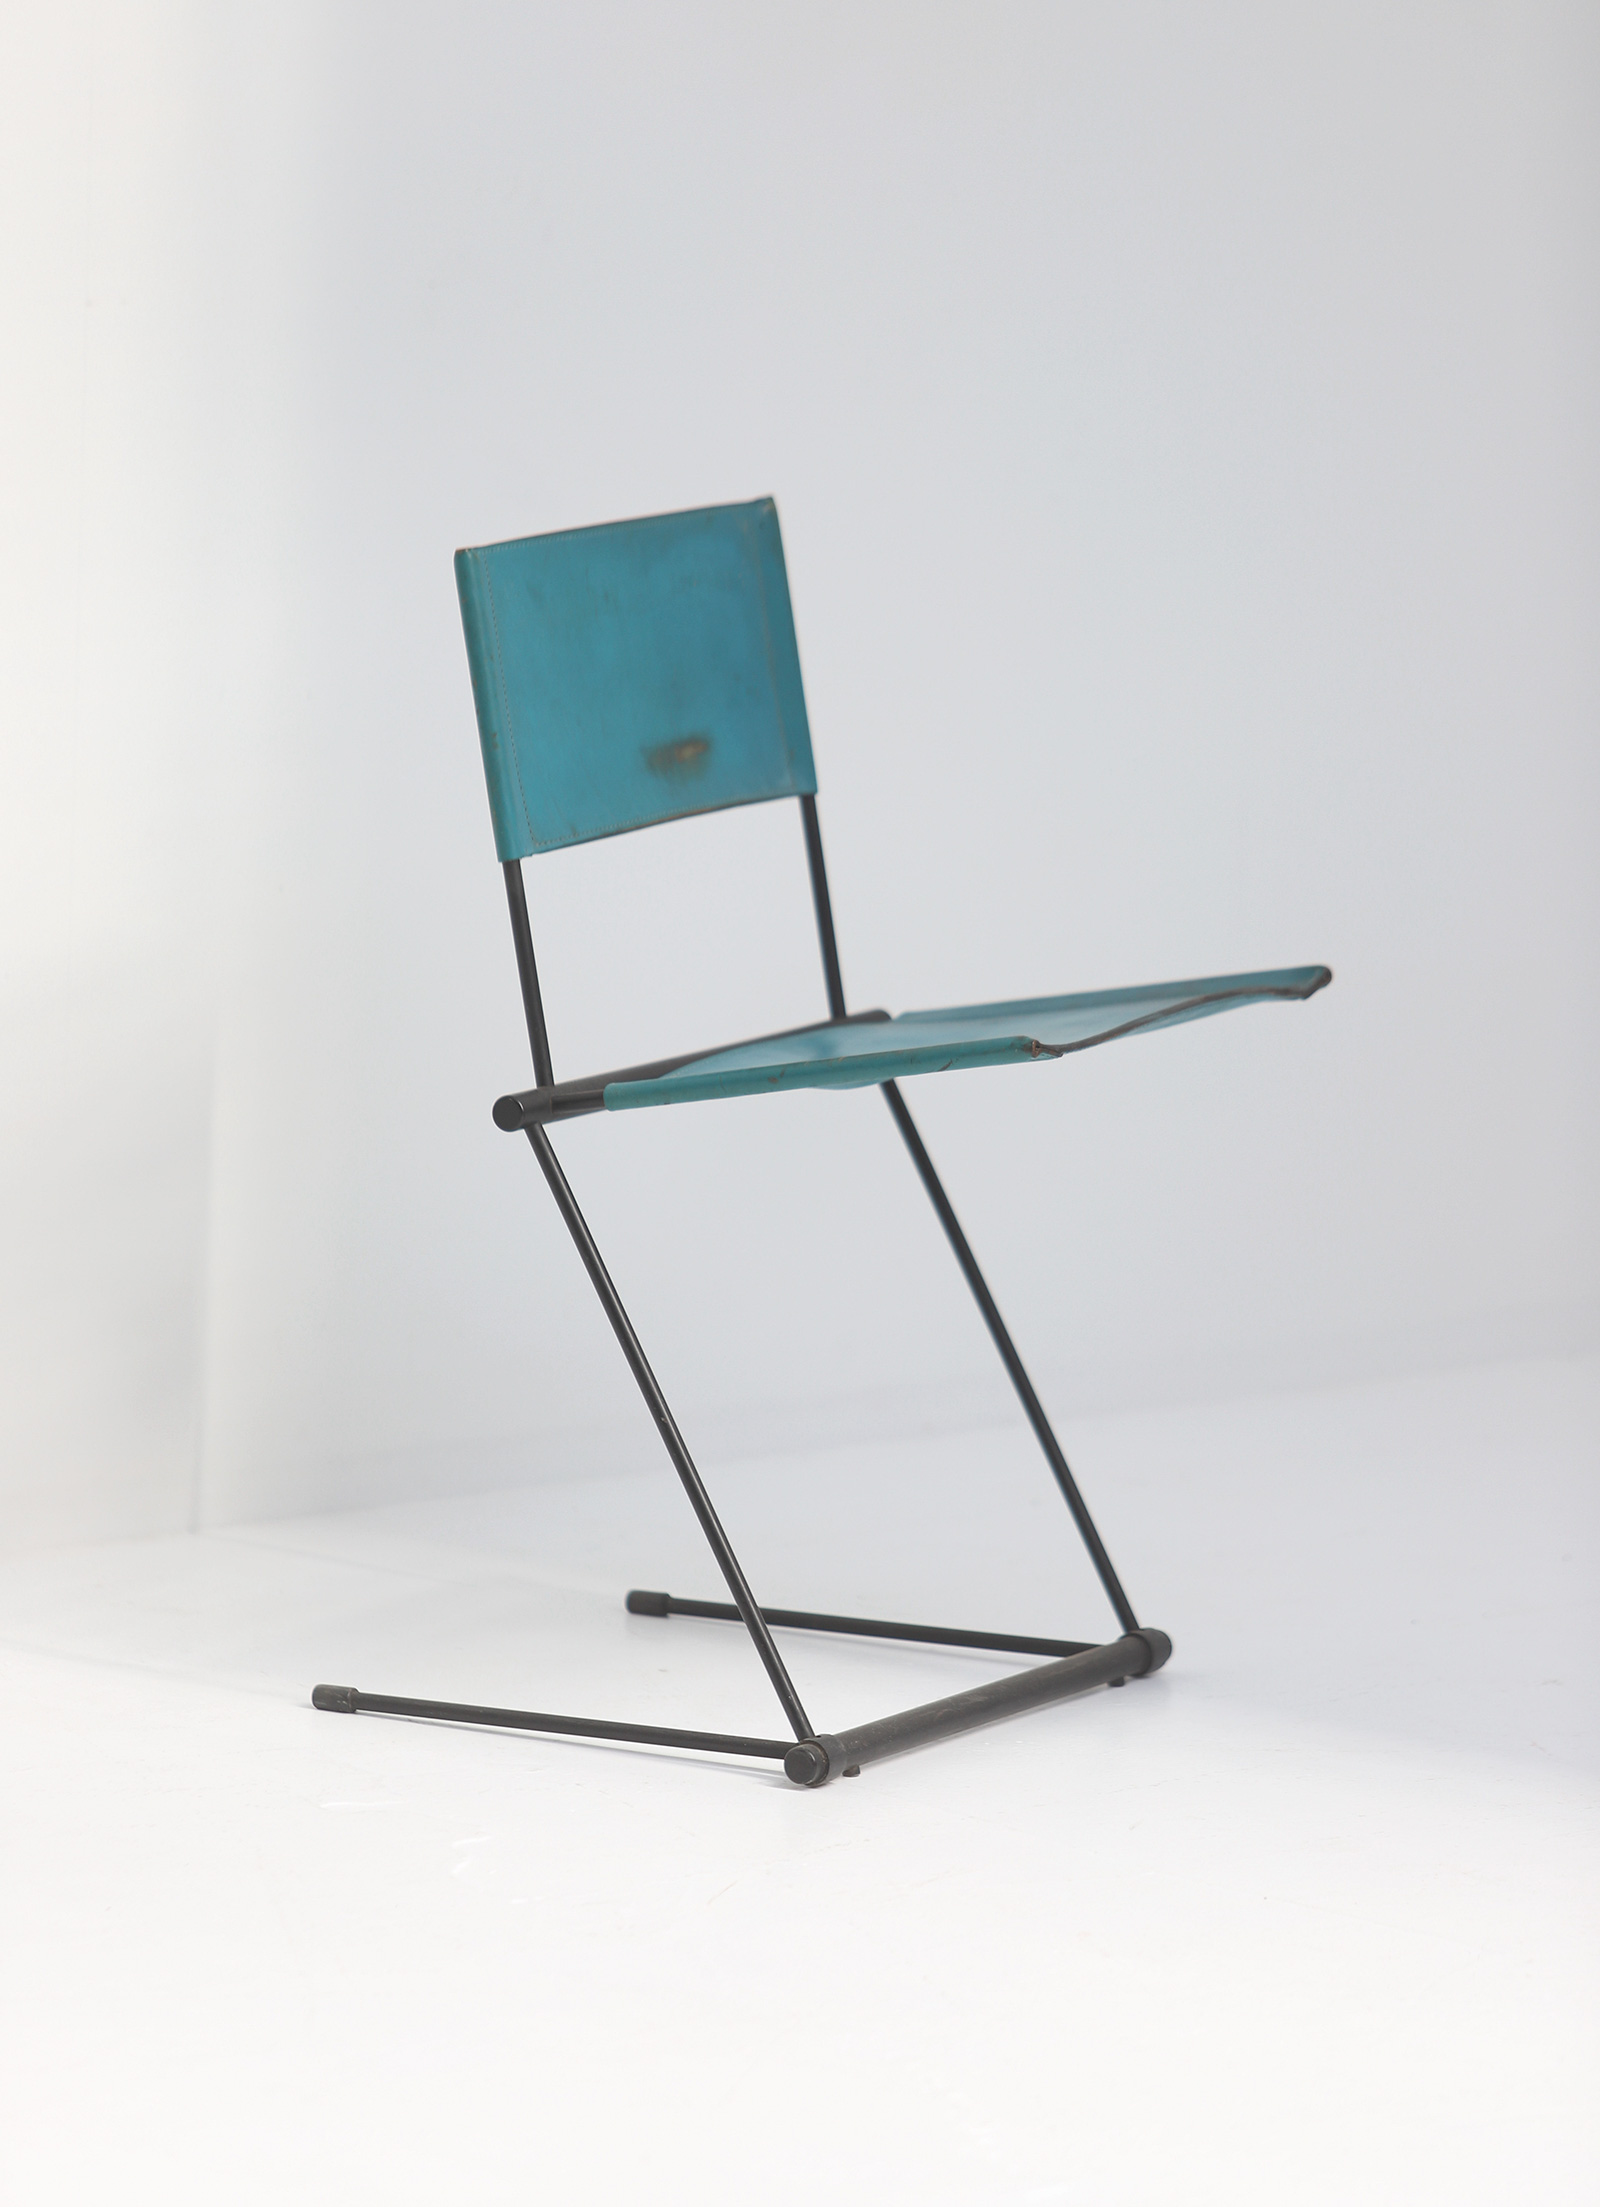 Ballerina Chairs By Herbert Ohl For Matteo Grassiimage 2